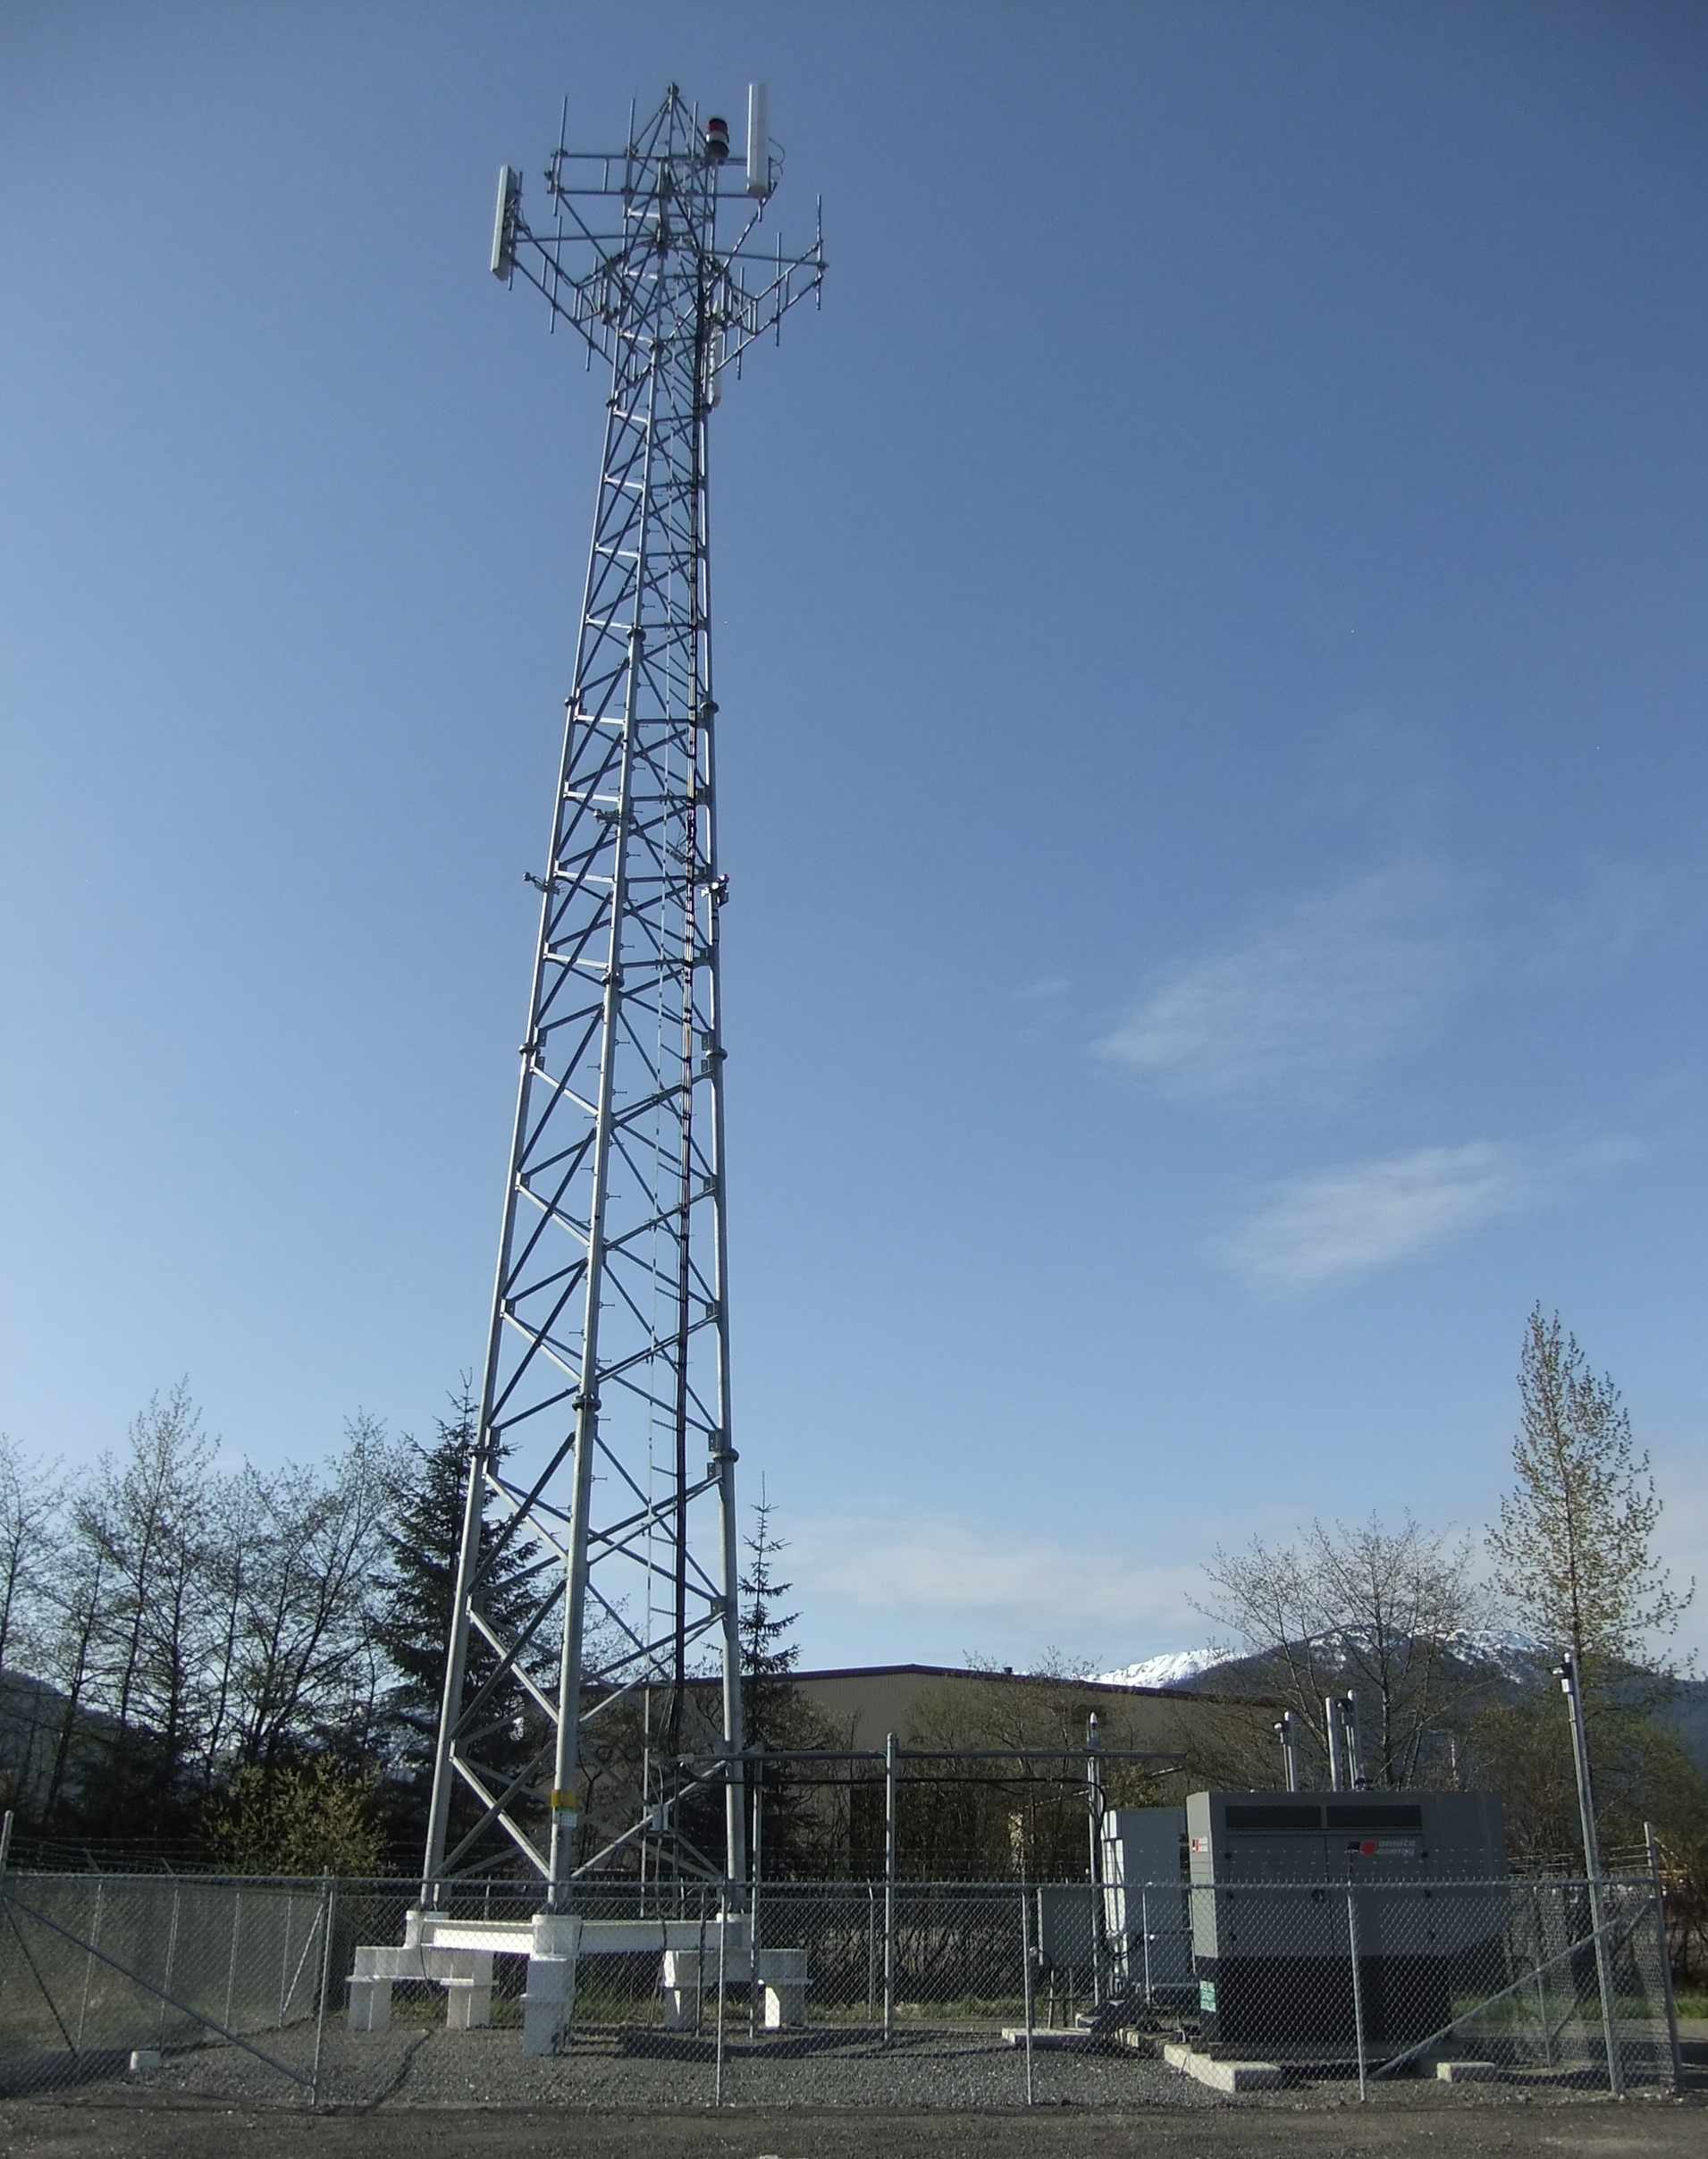 What does a cell tower look like